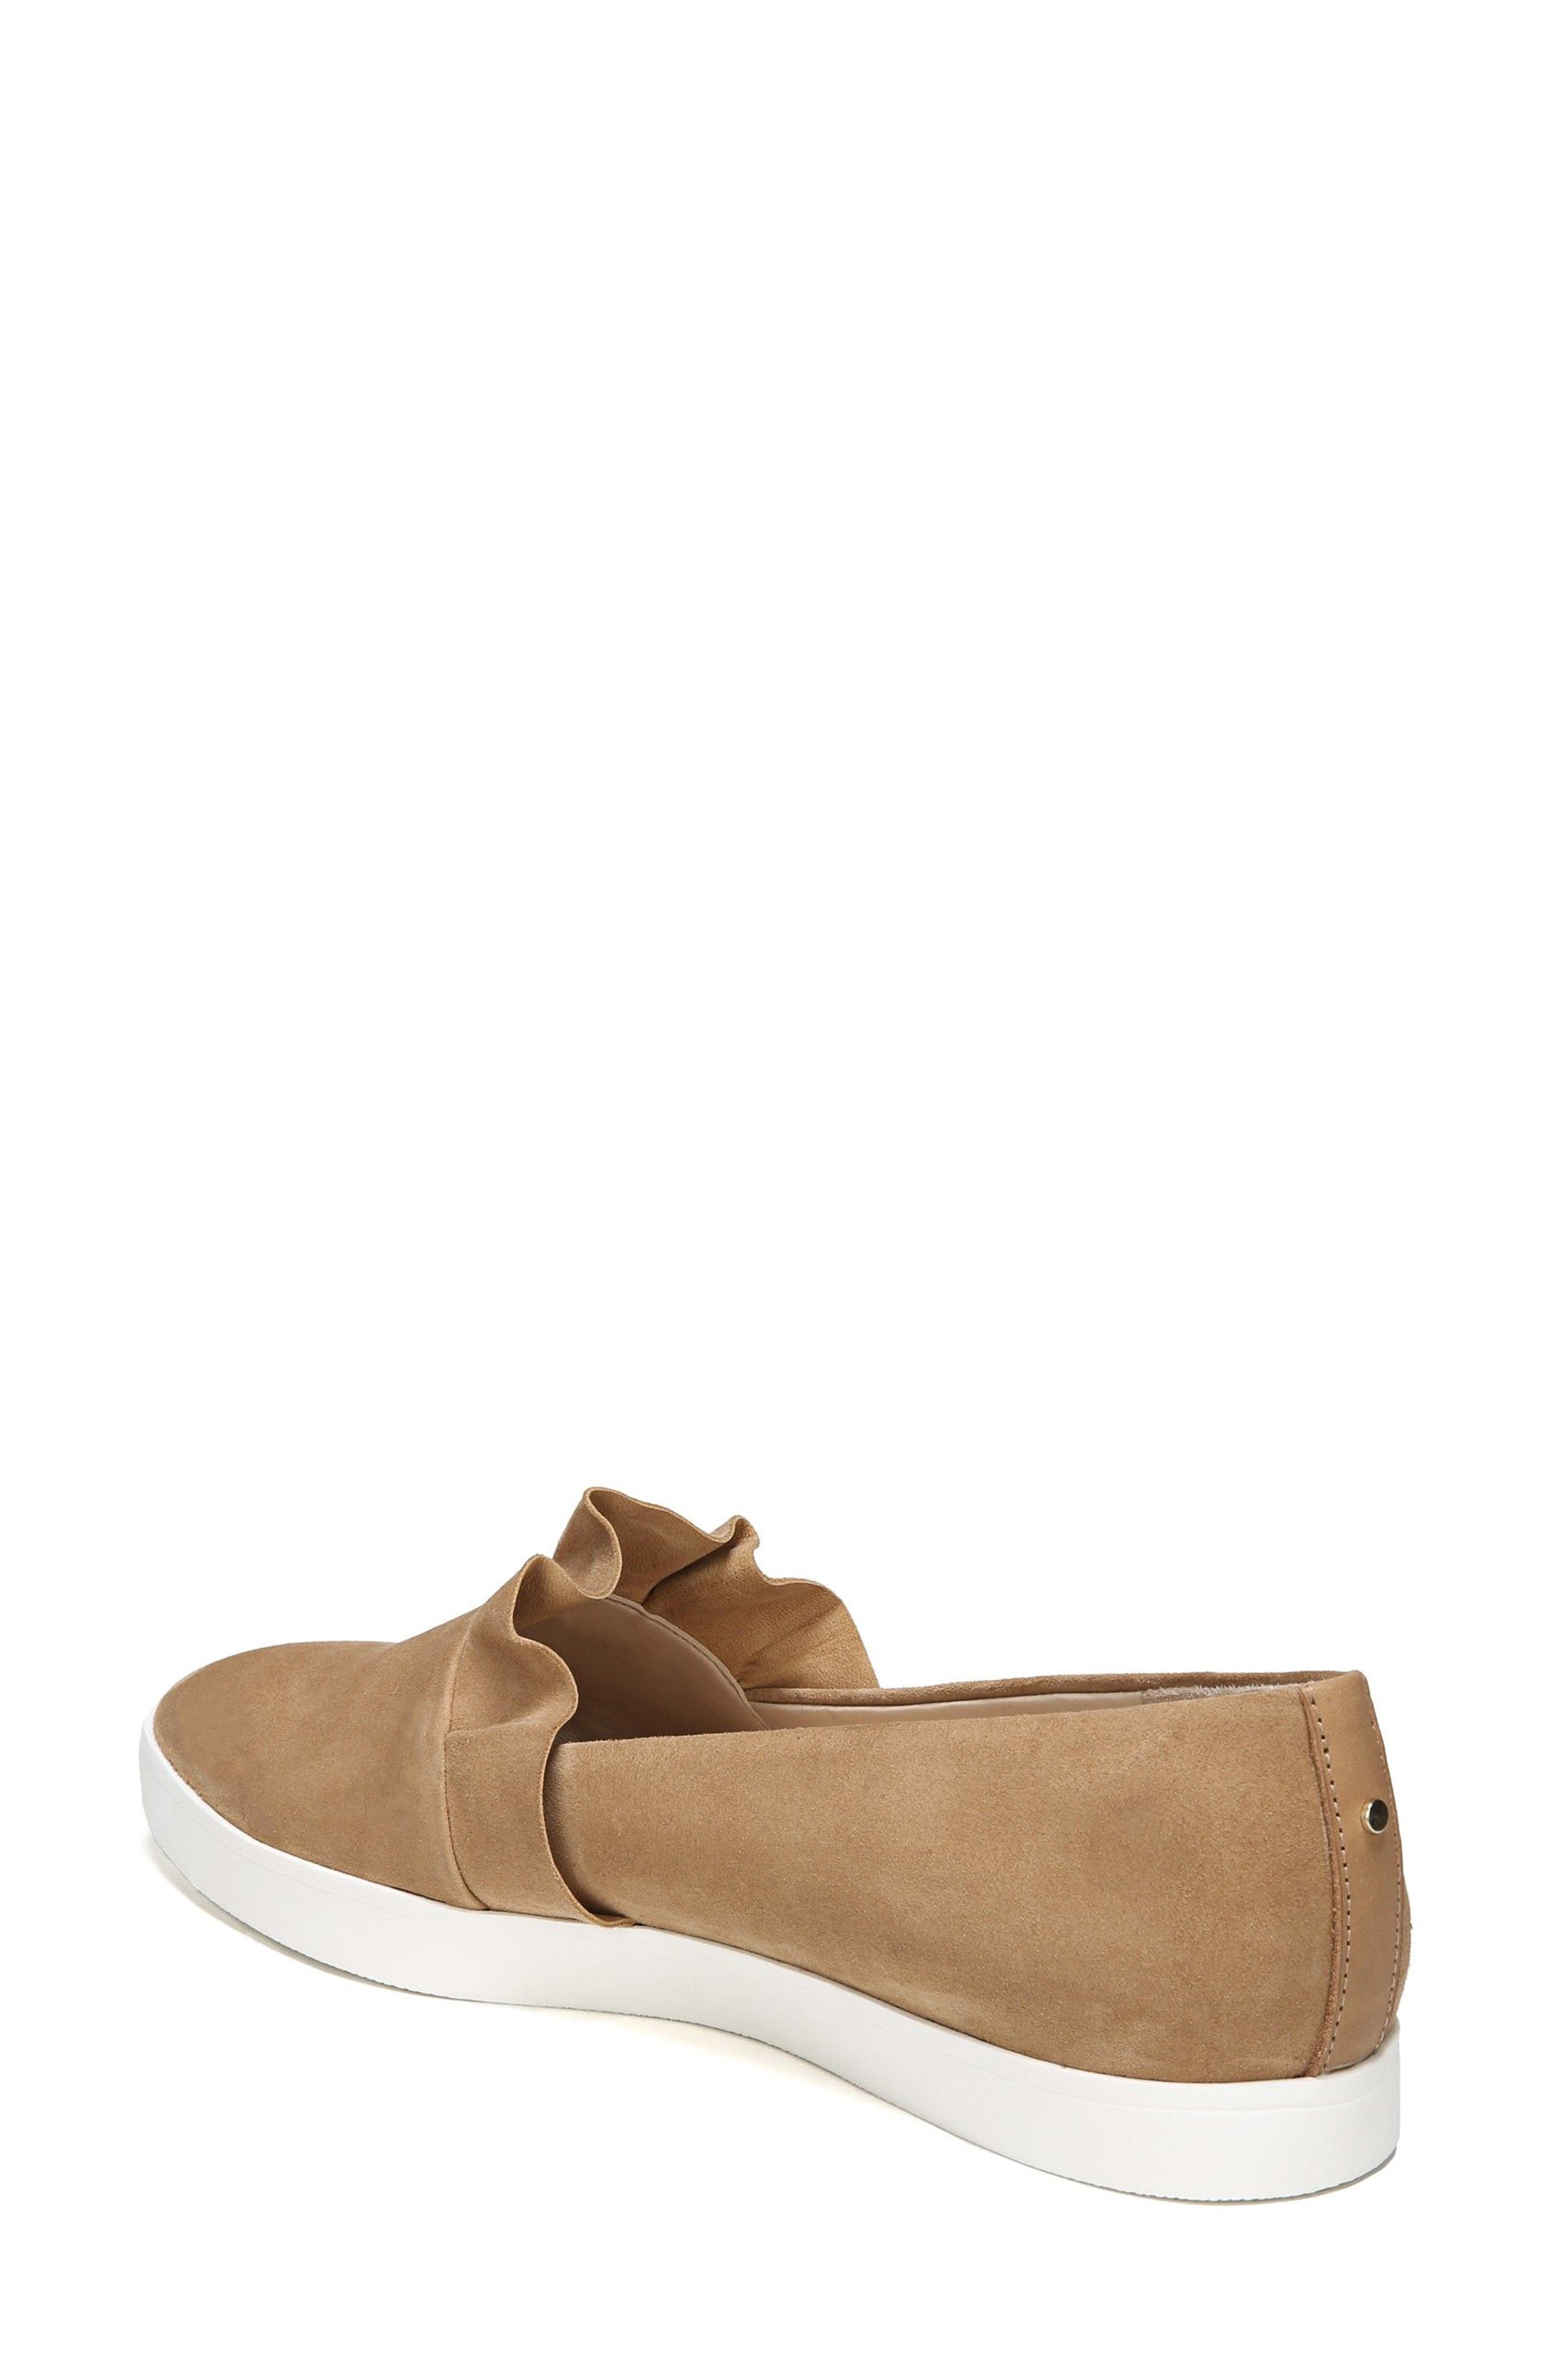 Vienna Slip-On Sneaker,                             Alternate thumbnail 5, color,